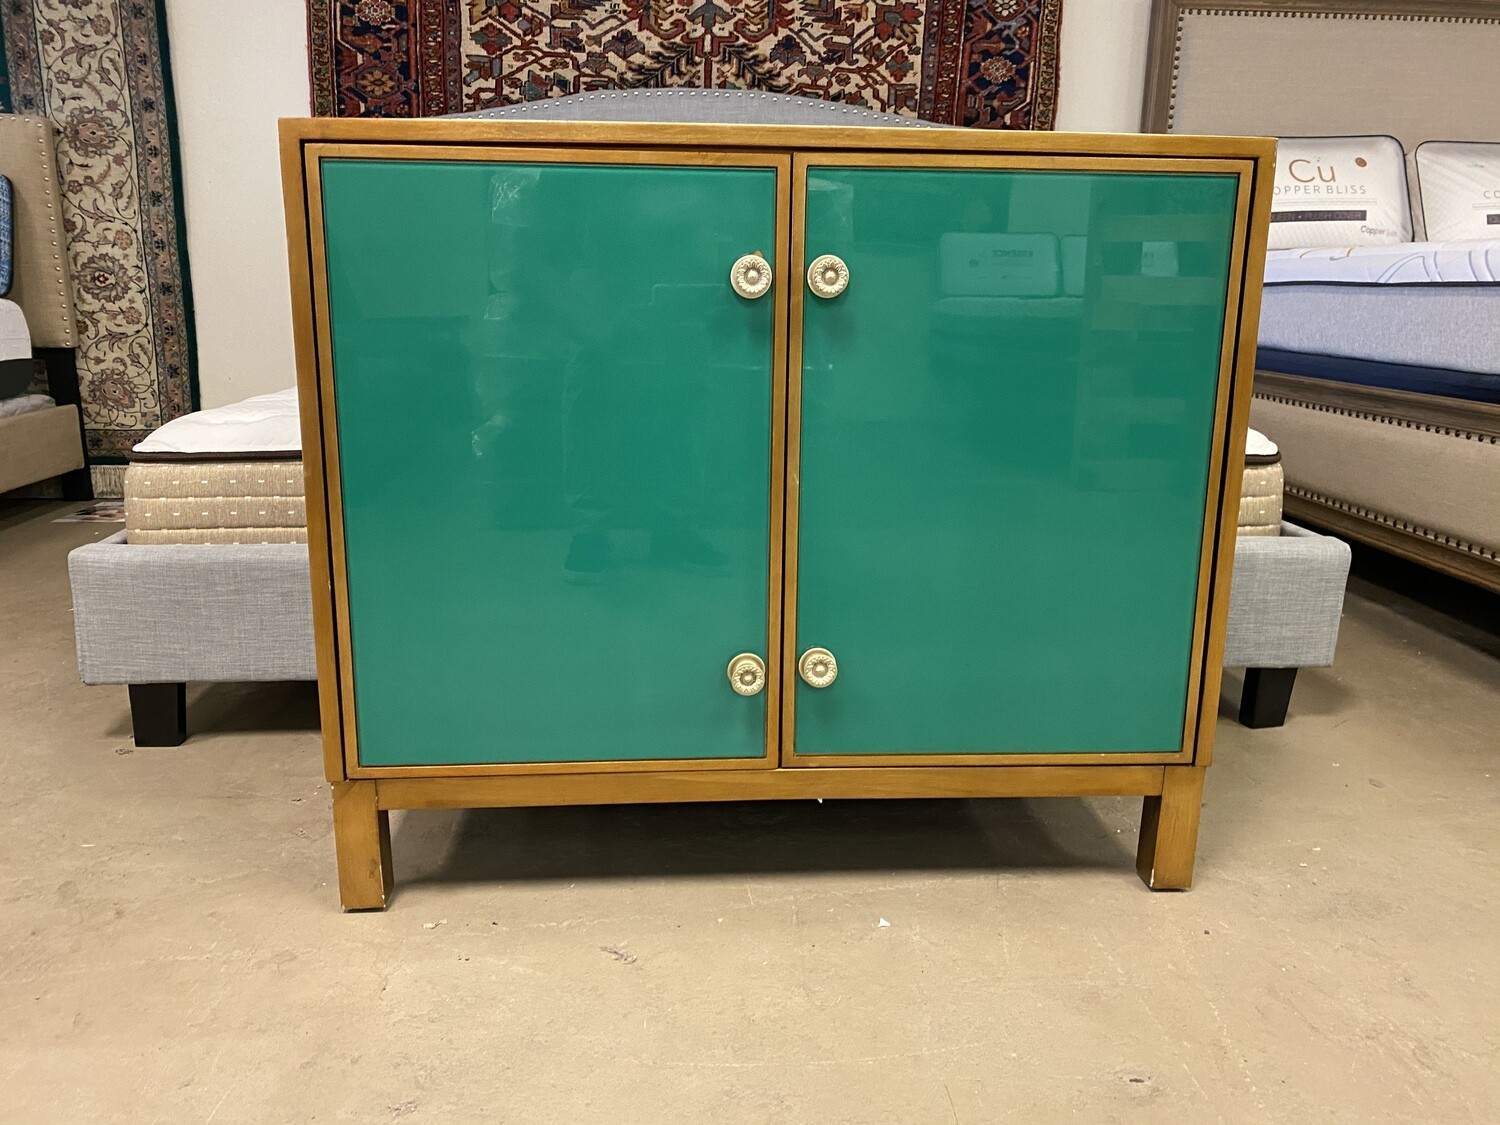 Glass Cabinet w/ Shelves (Green)